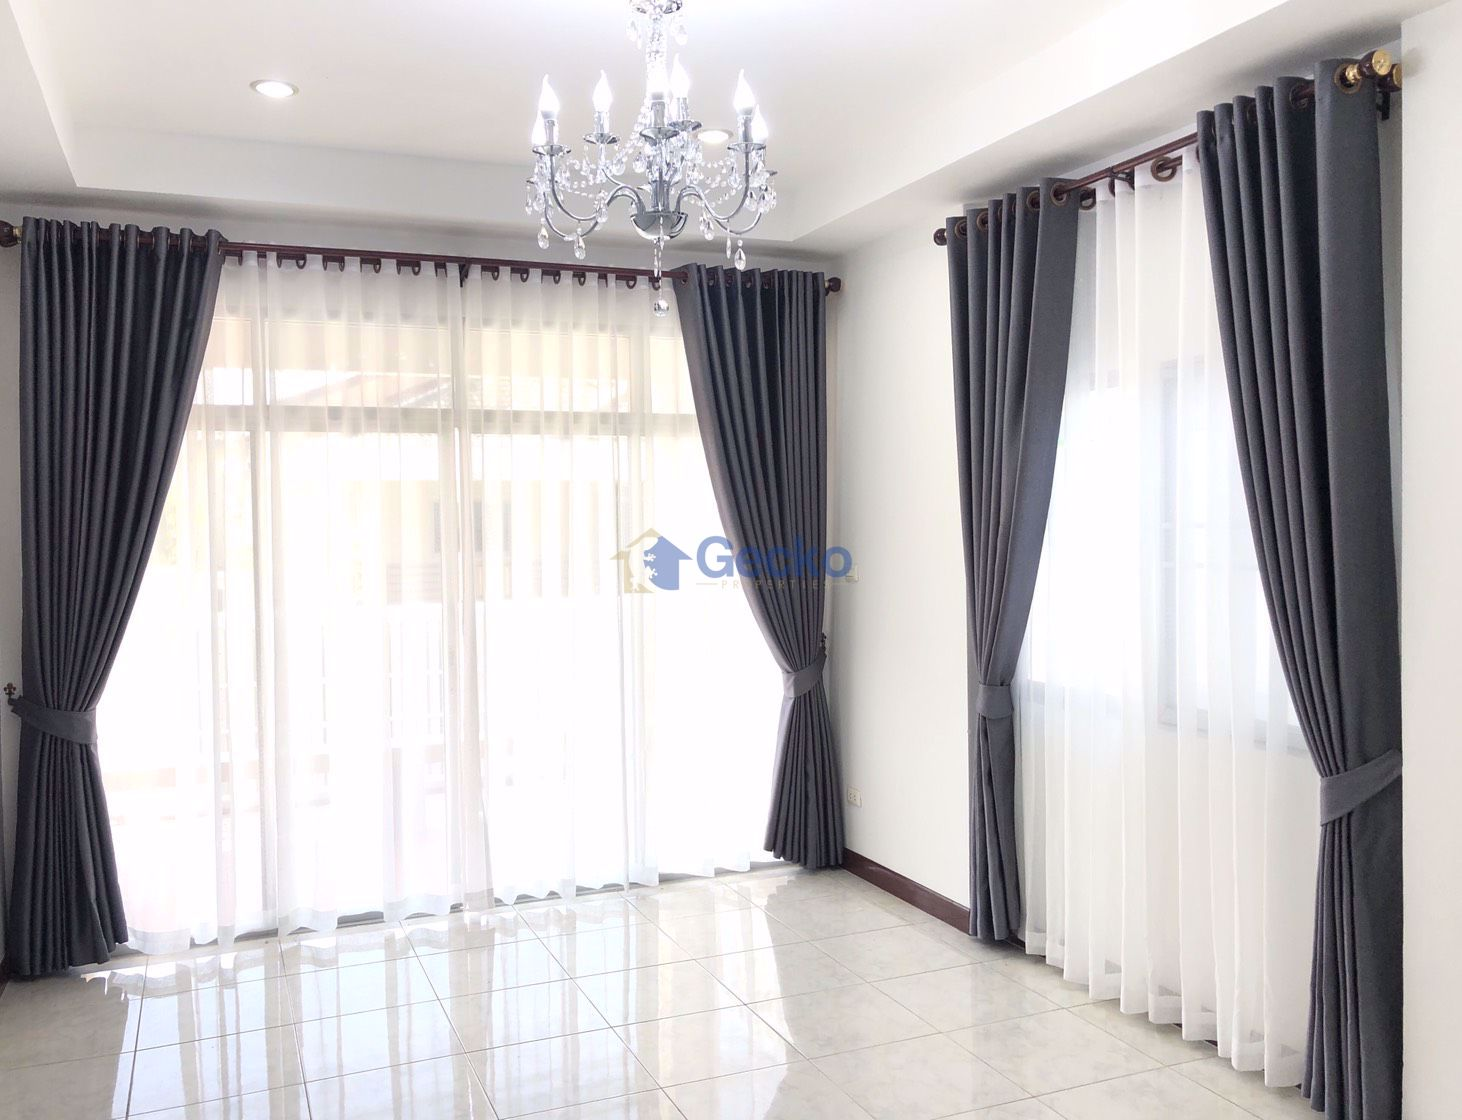 Picture of 2 Bedrooms bed in House in Baan Pannathon 3  in East Pattaya H009007